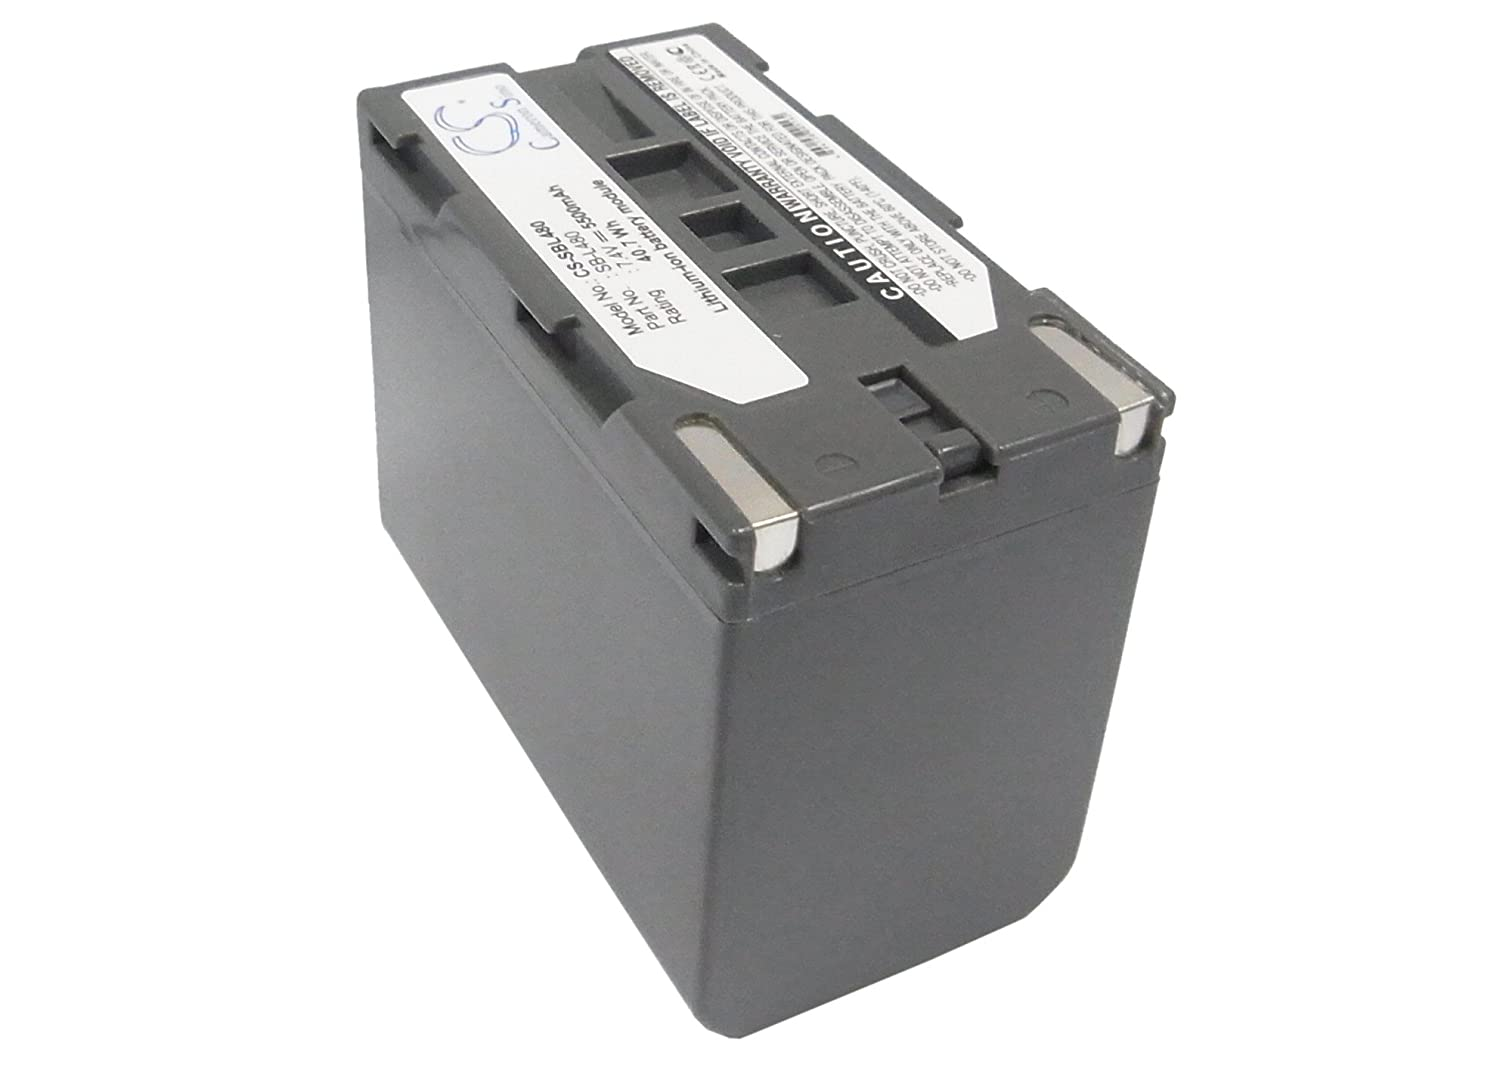 Cameron Sino Rechargeble Battery forリーフaptus-ii 12 B01B5JK6JO